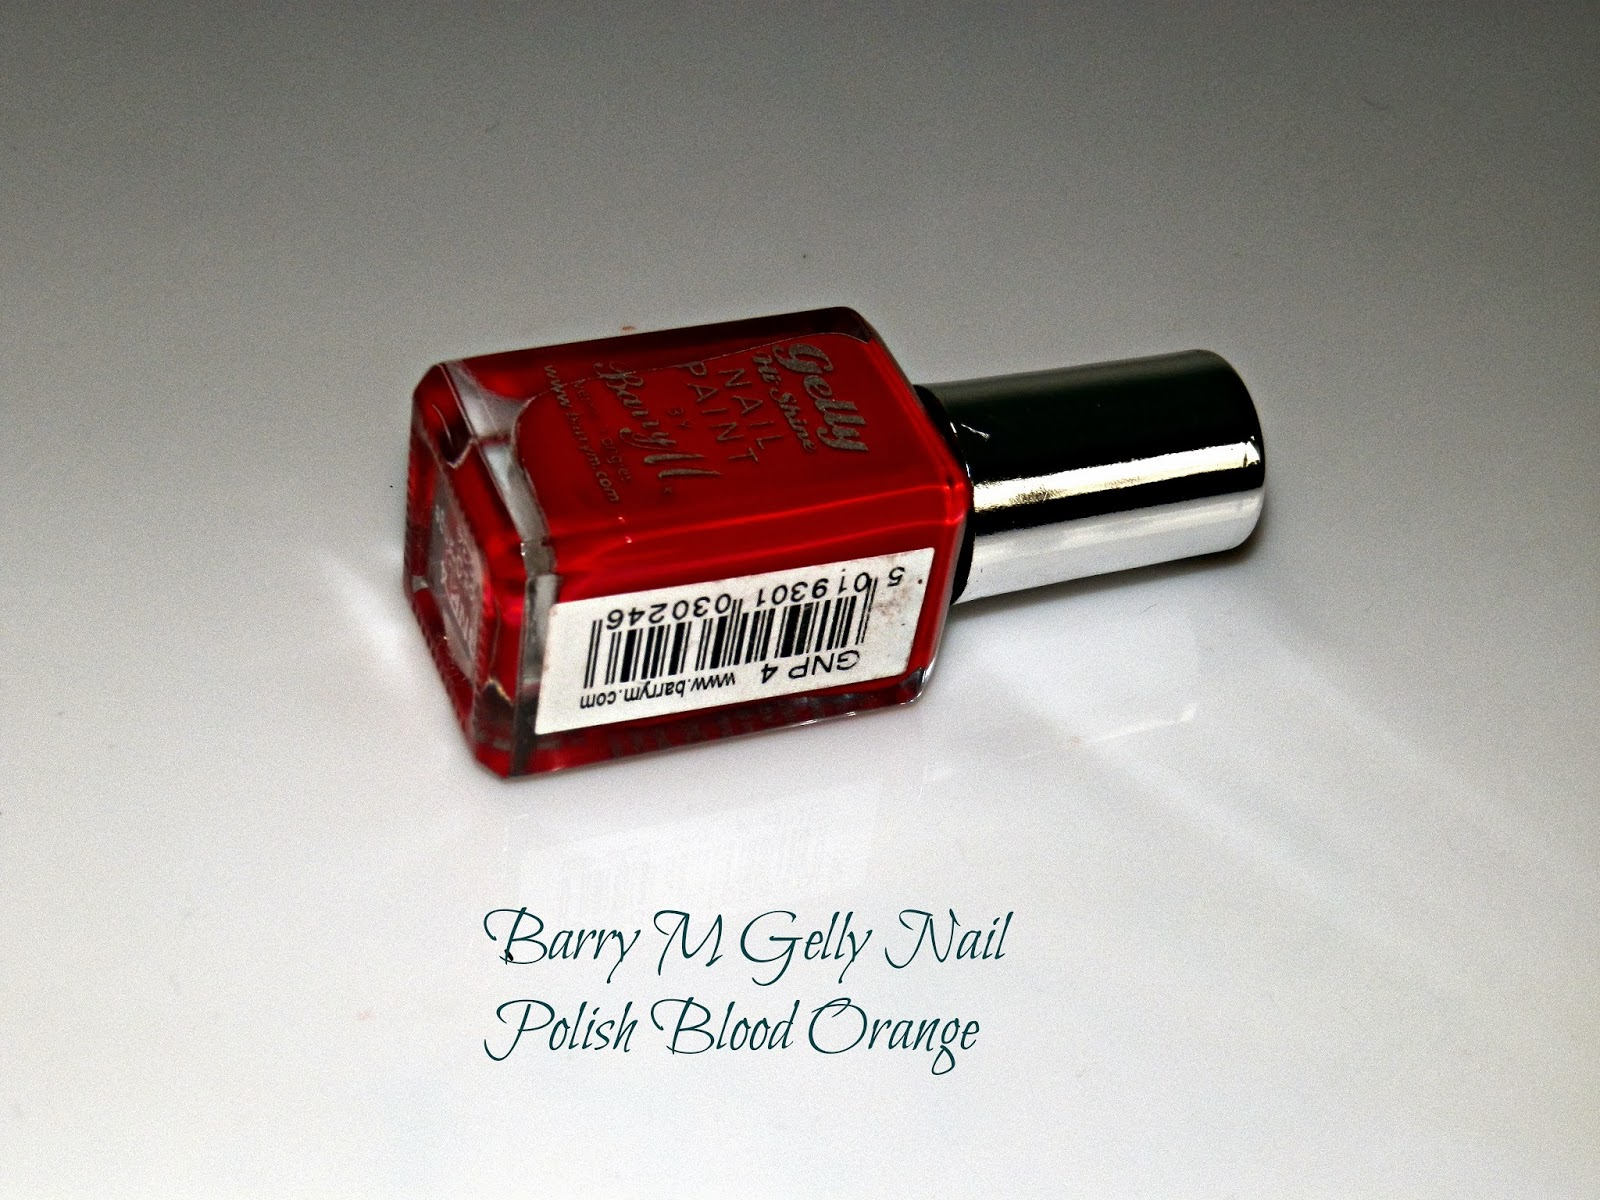 Barry M Gelly Nail Polish Blood Orange Swatches